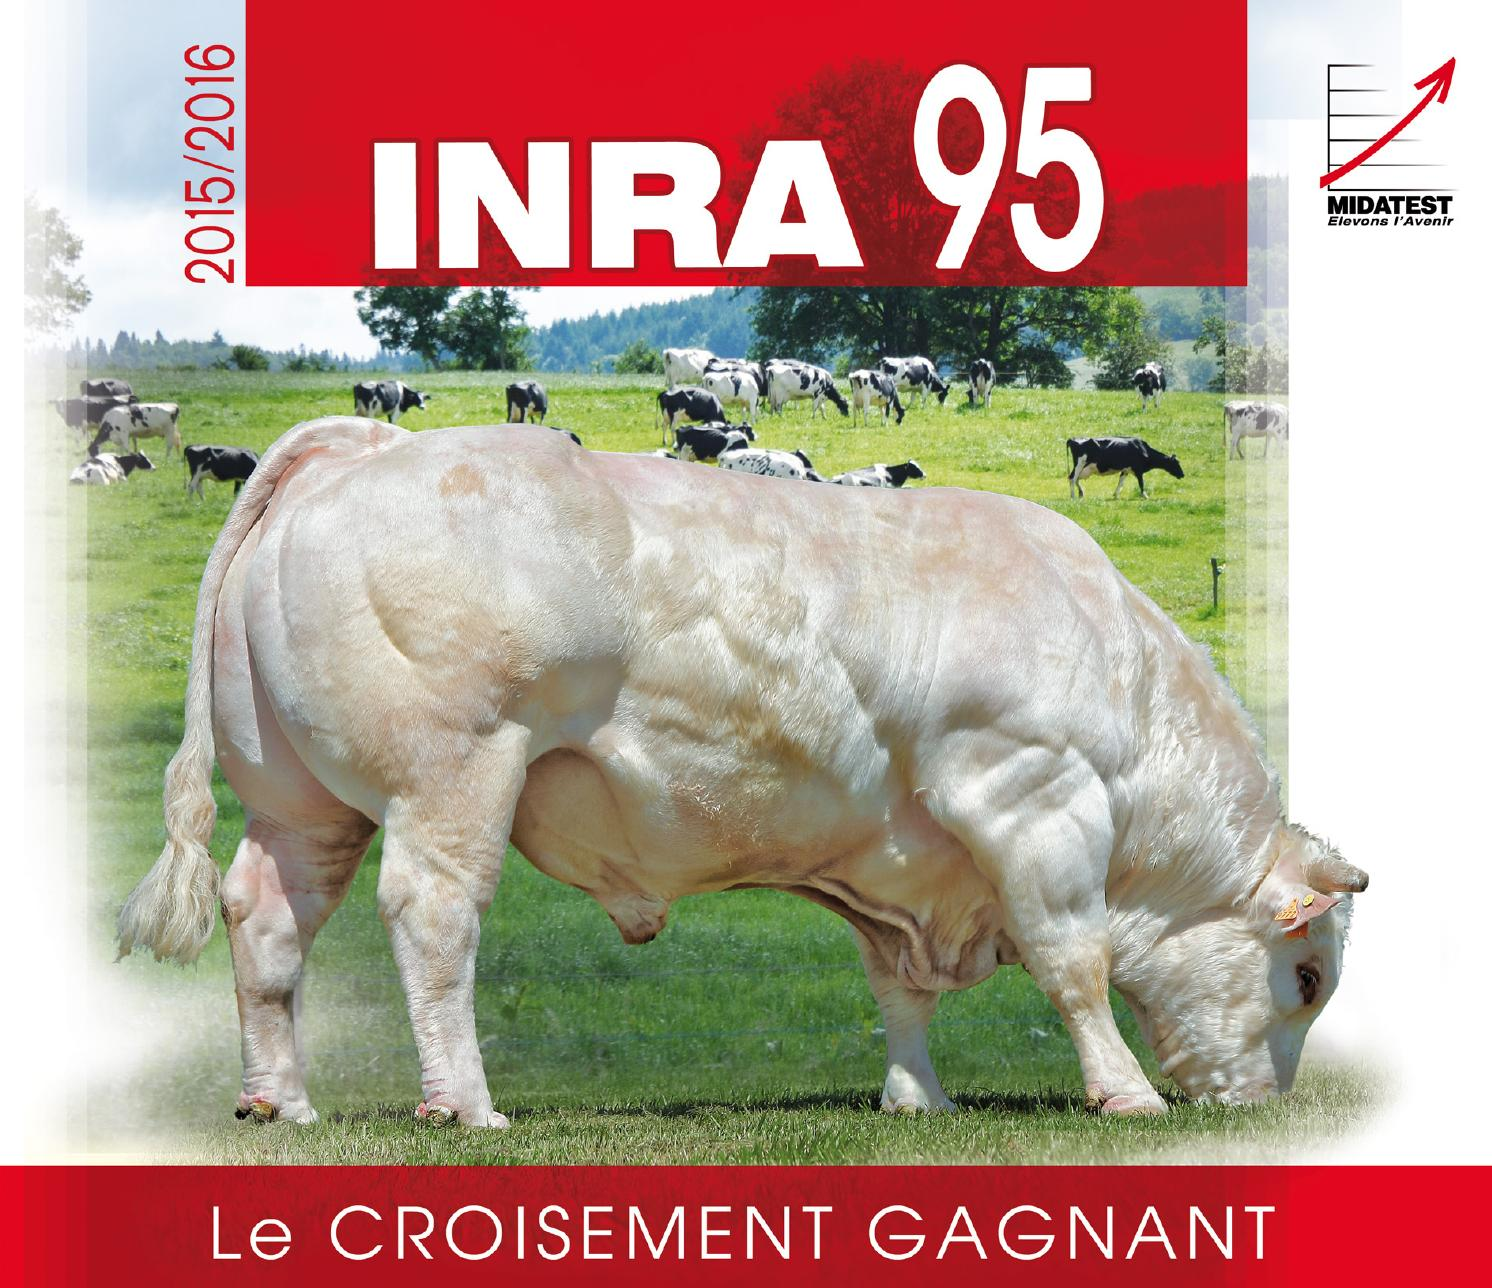 Catalogue INRA 95 2015 by AURIVA-Elevage